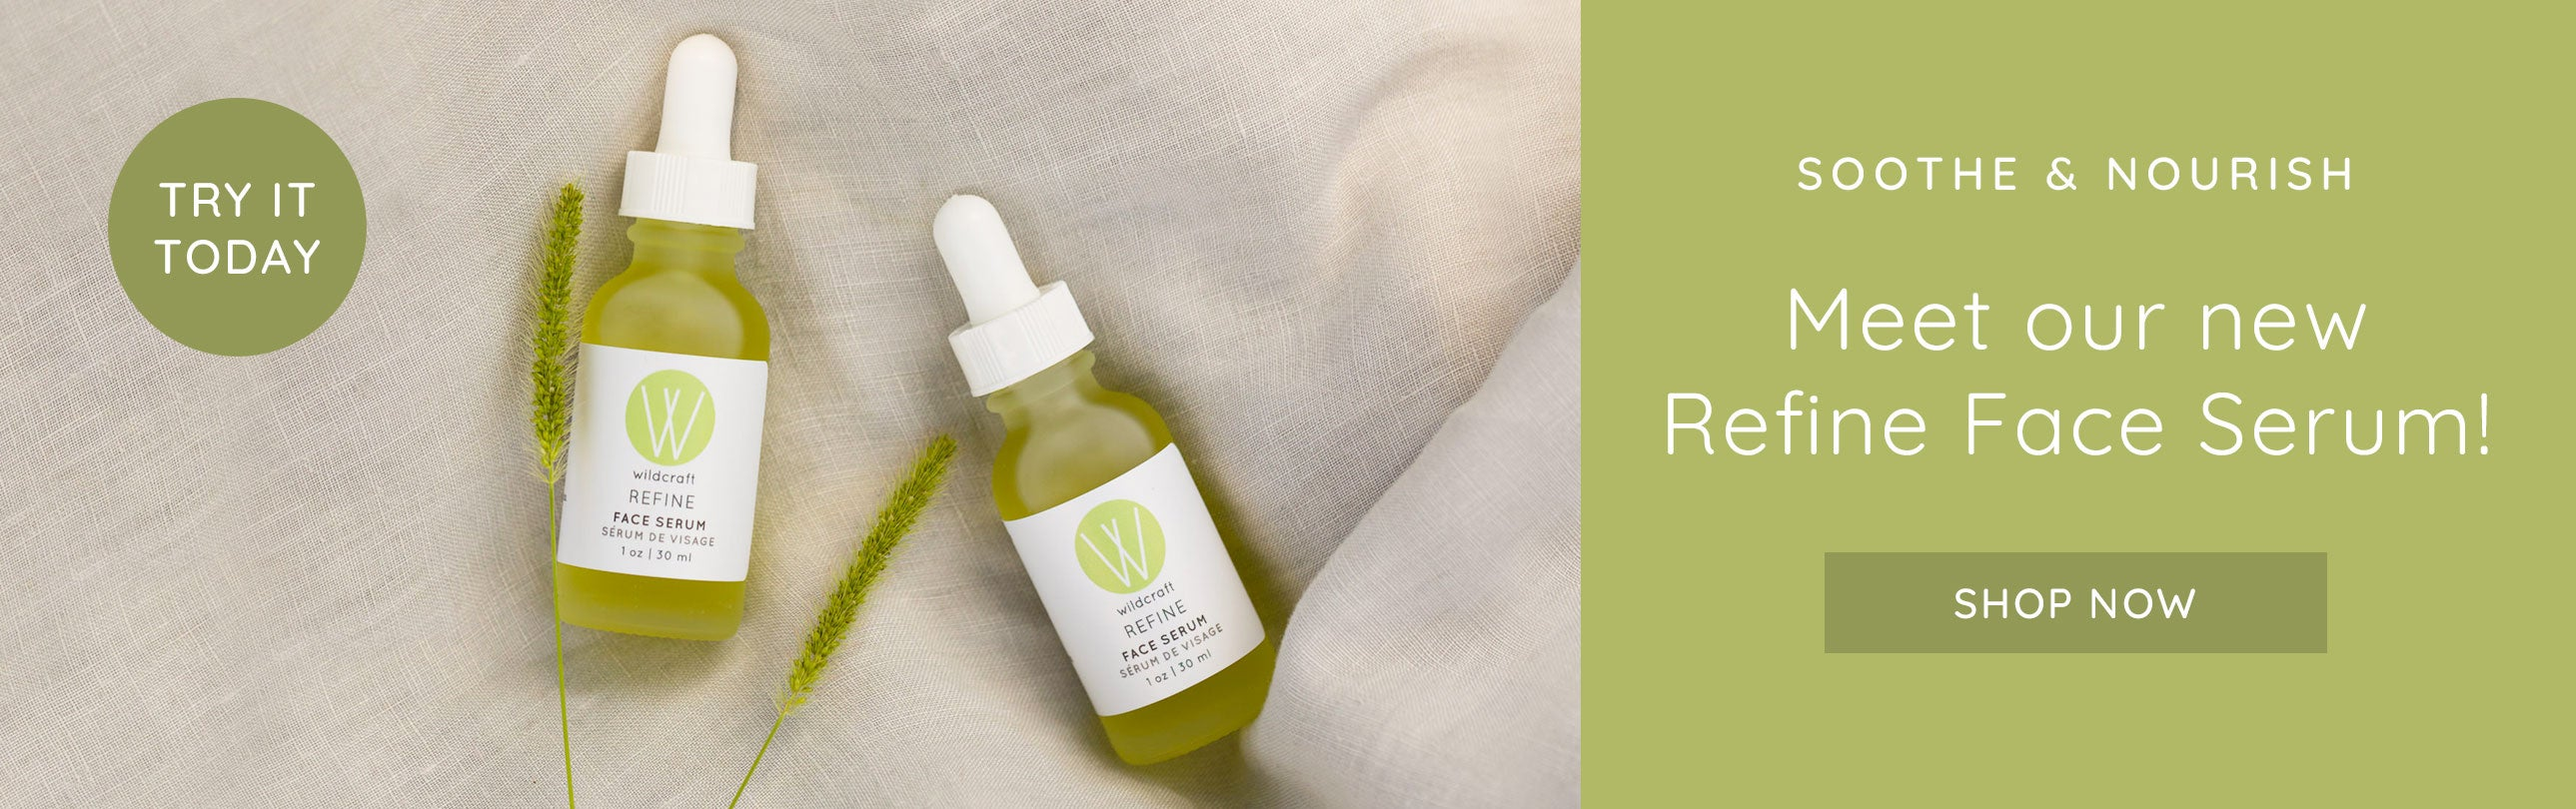 Our Refine Face Serum is here!